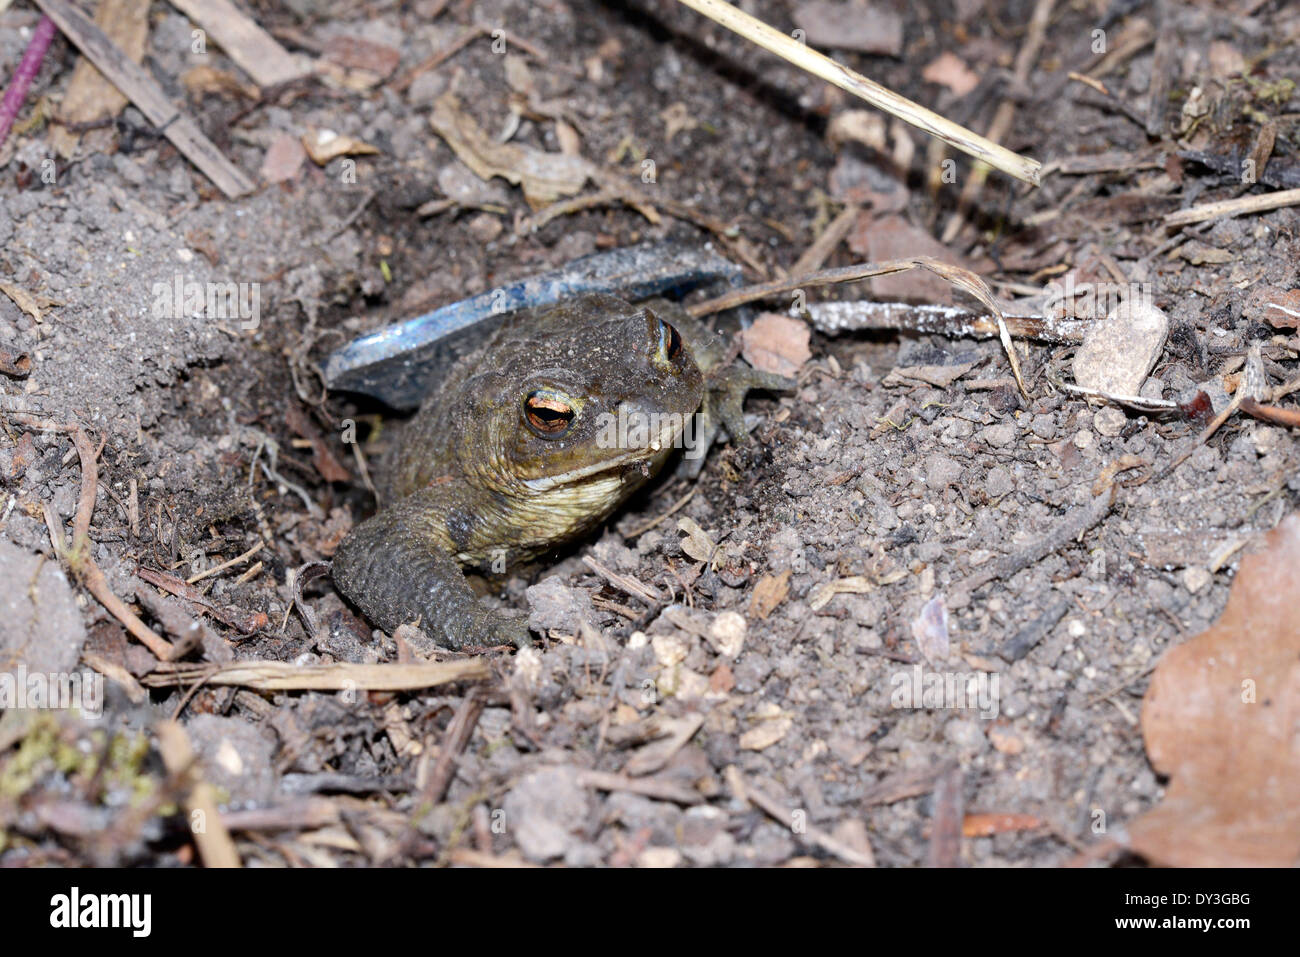 Toad in the hole. A common toad (Bufo bufo) sits in a hole for protection from predators. - Stock Image